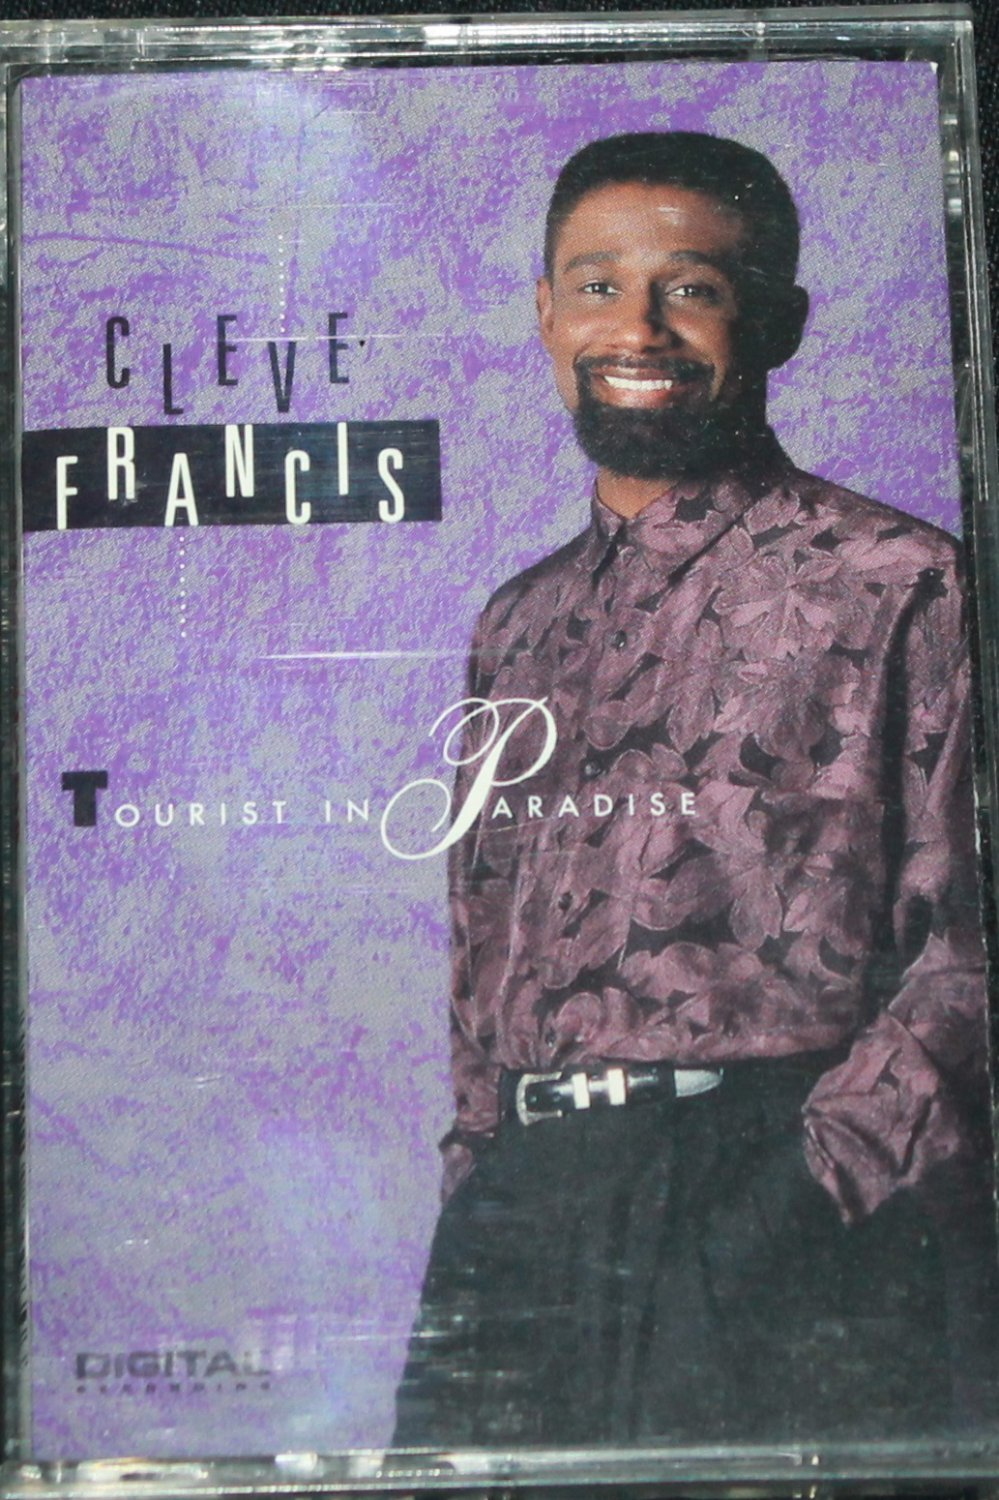 Cleve Francis country music singer songs music album cassette tape